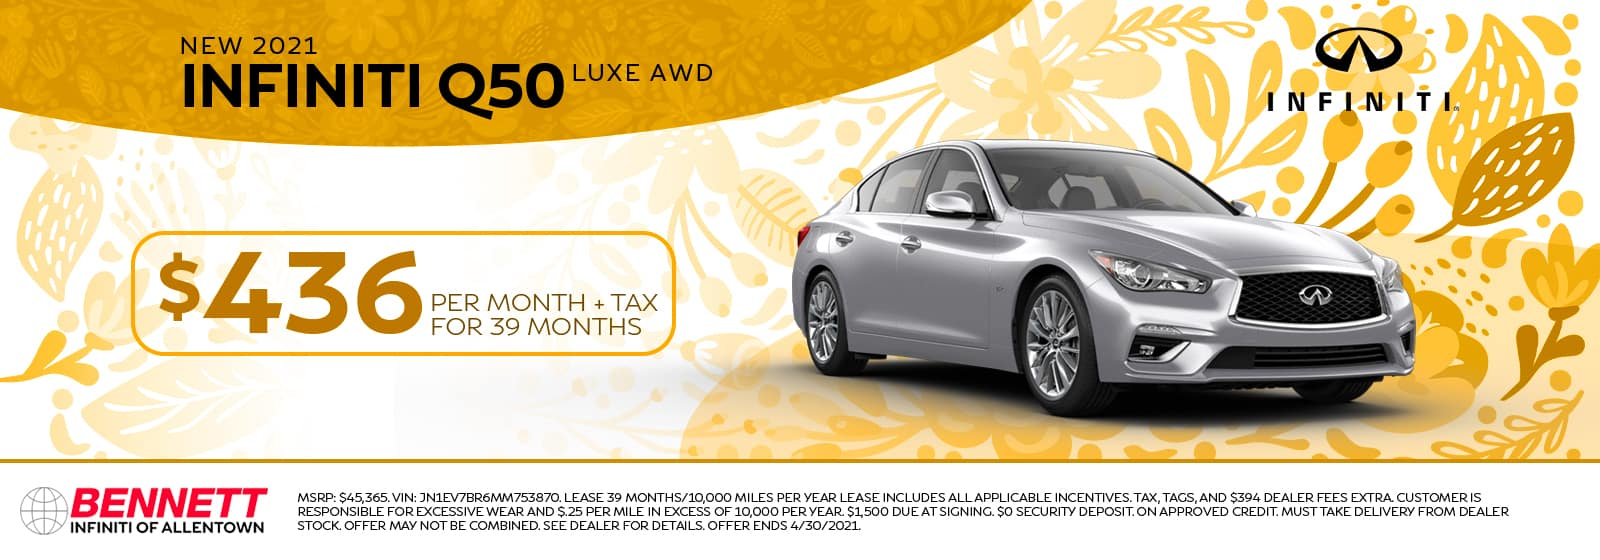 New 2021 INFINITI Q50 Luxe AWD - Lease $436 per month + tax for 39 months.